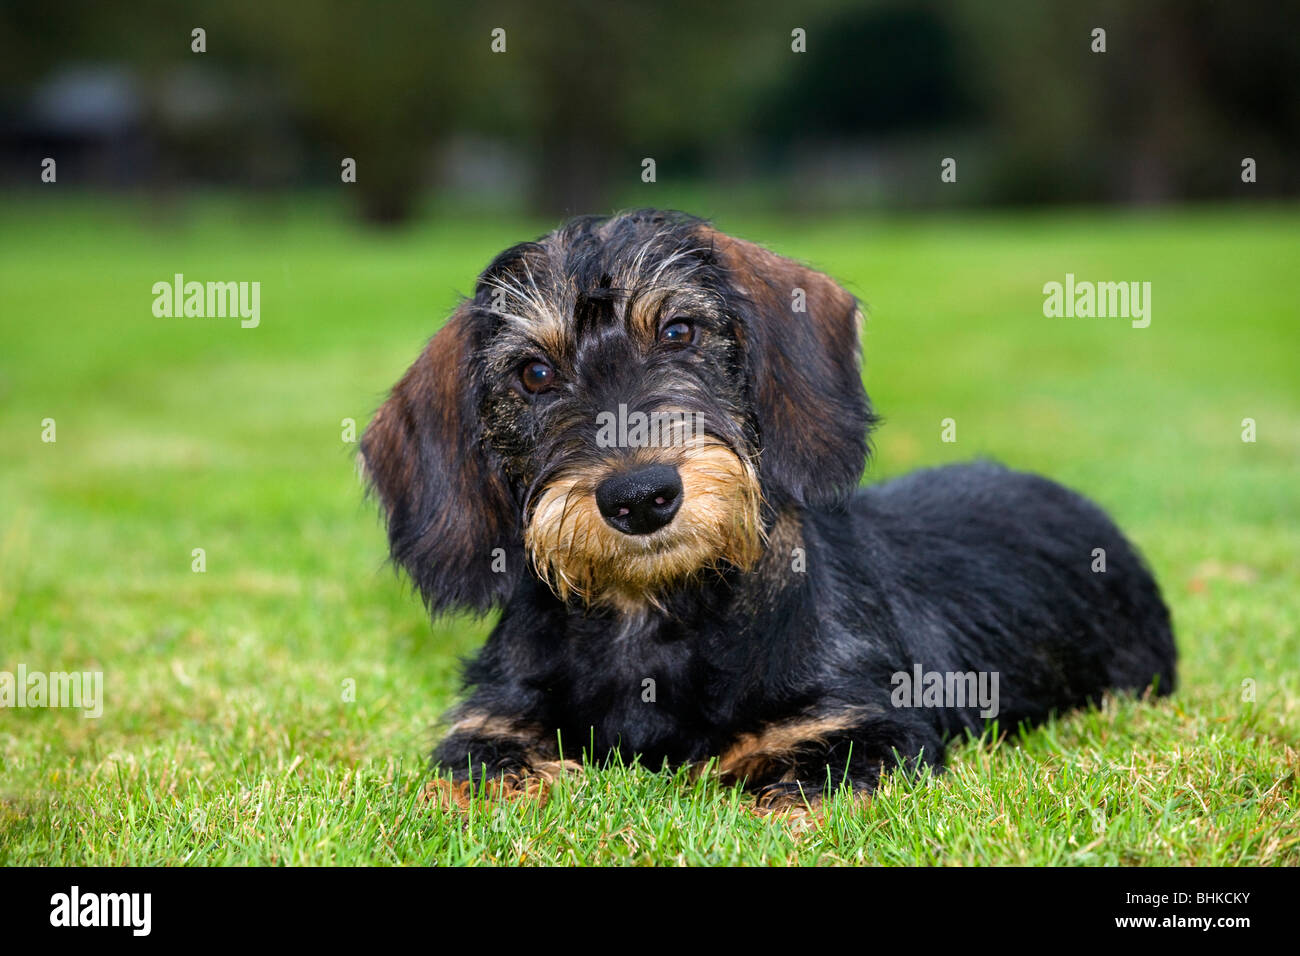 Wire-haired / Wirehaired Dachshund (Canis lupus familiaris) pup lying on lawn in garden - Stock Image